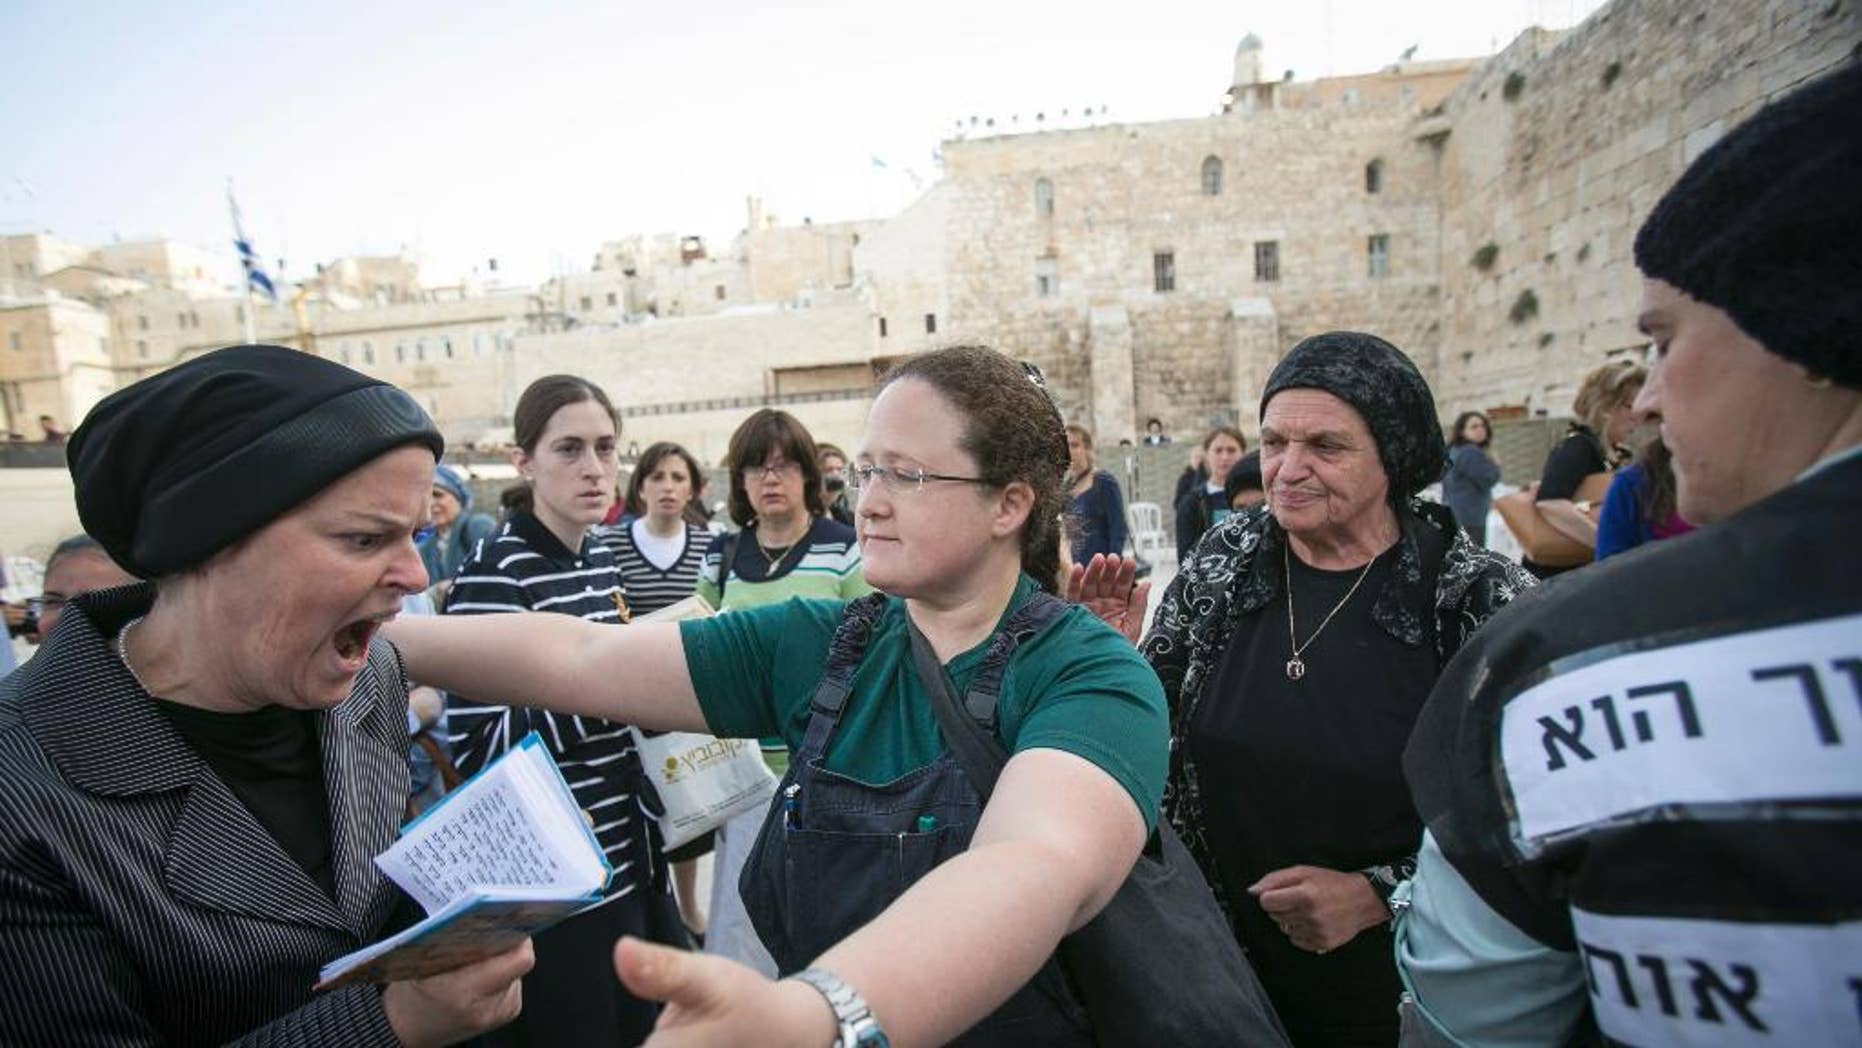 """FILE - In this June 9, 2013 file photo, an Israeli member of the """"Woman of the Wall"""" organization, right, tries to hug an ultra-Orthodox woman as they pray at the Western Wall, the holiest site where Jews can pray, in Jerusalem's old city. Israeli police say dozens of ultra-Orthodox Jews attacked buses bearing photos of women worshipping like men do. The advertisements on the buses were by Women of the Wall, a group that seeks to promote gender equality at Jerusalem's Western Wall, the holiest site where Jews can pray. The ads showed women and girls holding Torah scrolls, an act which many Orthodox Jews say is reserved for men. (AP Photo/Michal Fattal,File) ISRAEL OUT"""